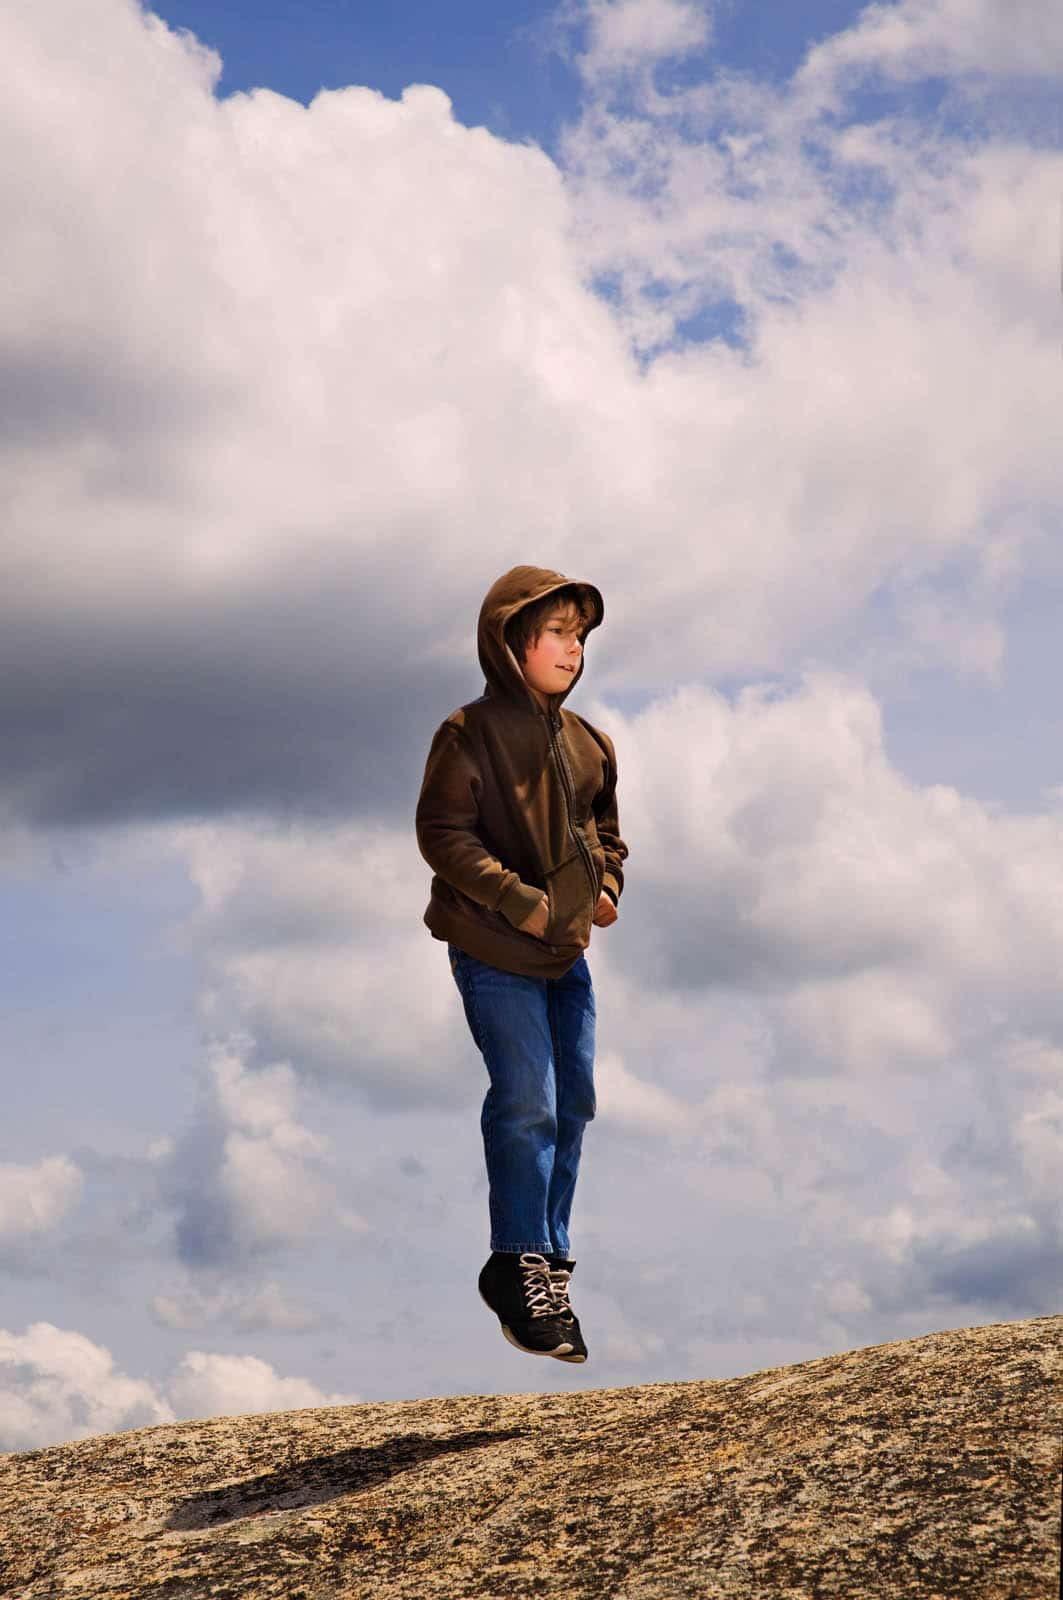 A young boy jumping on a granite boulder while enjoying a sunny spring day in Northern California.